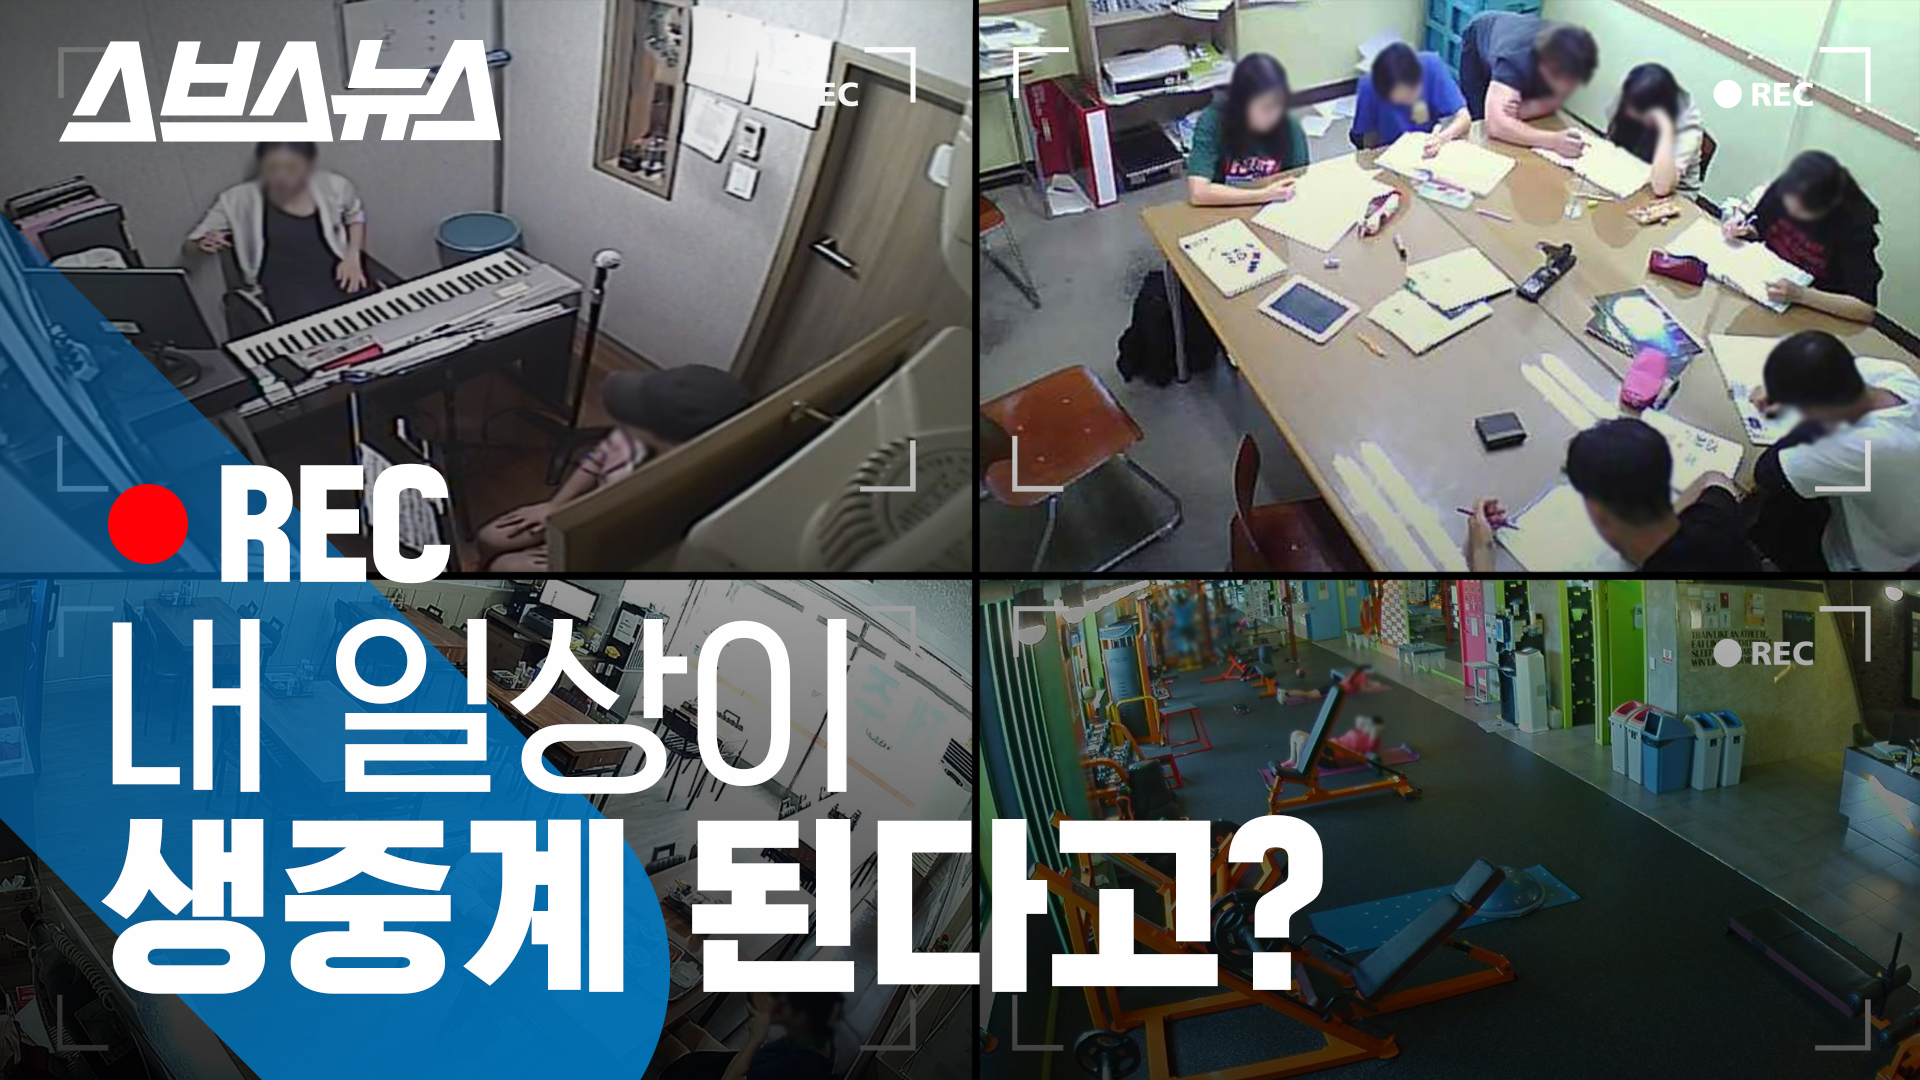 Sites that relay hundreds of Korean surveillance cameras 24